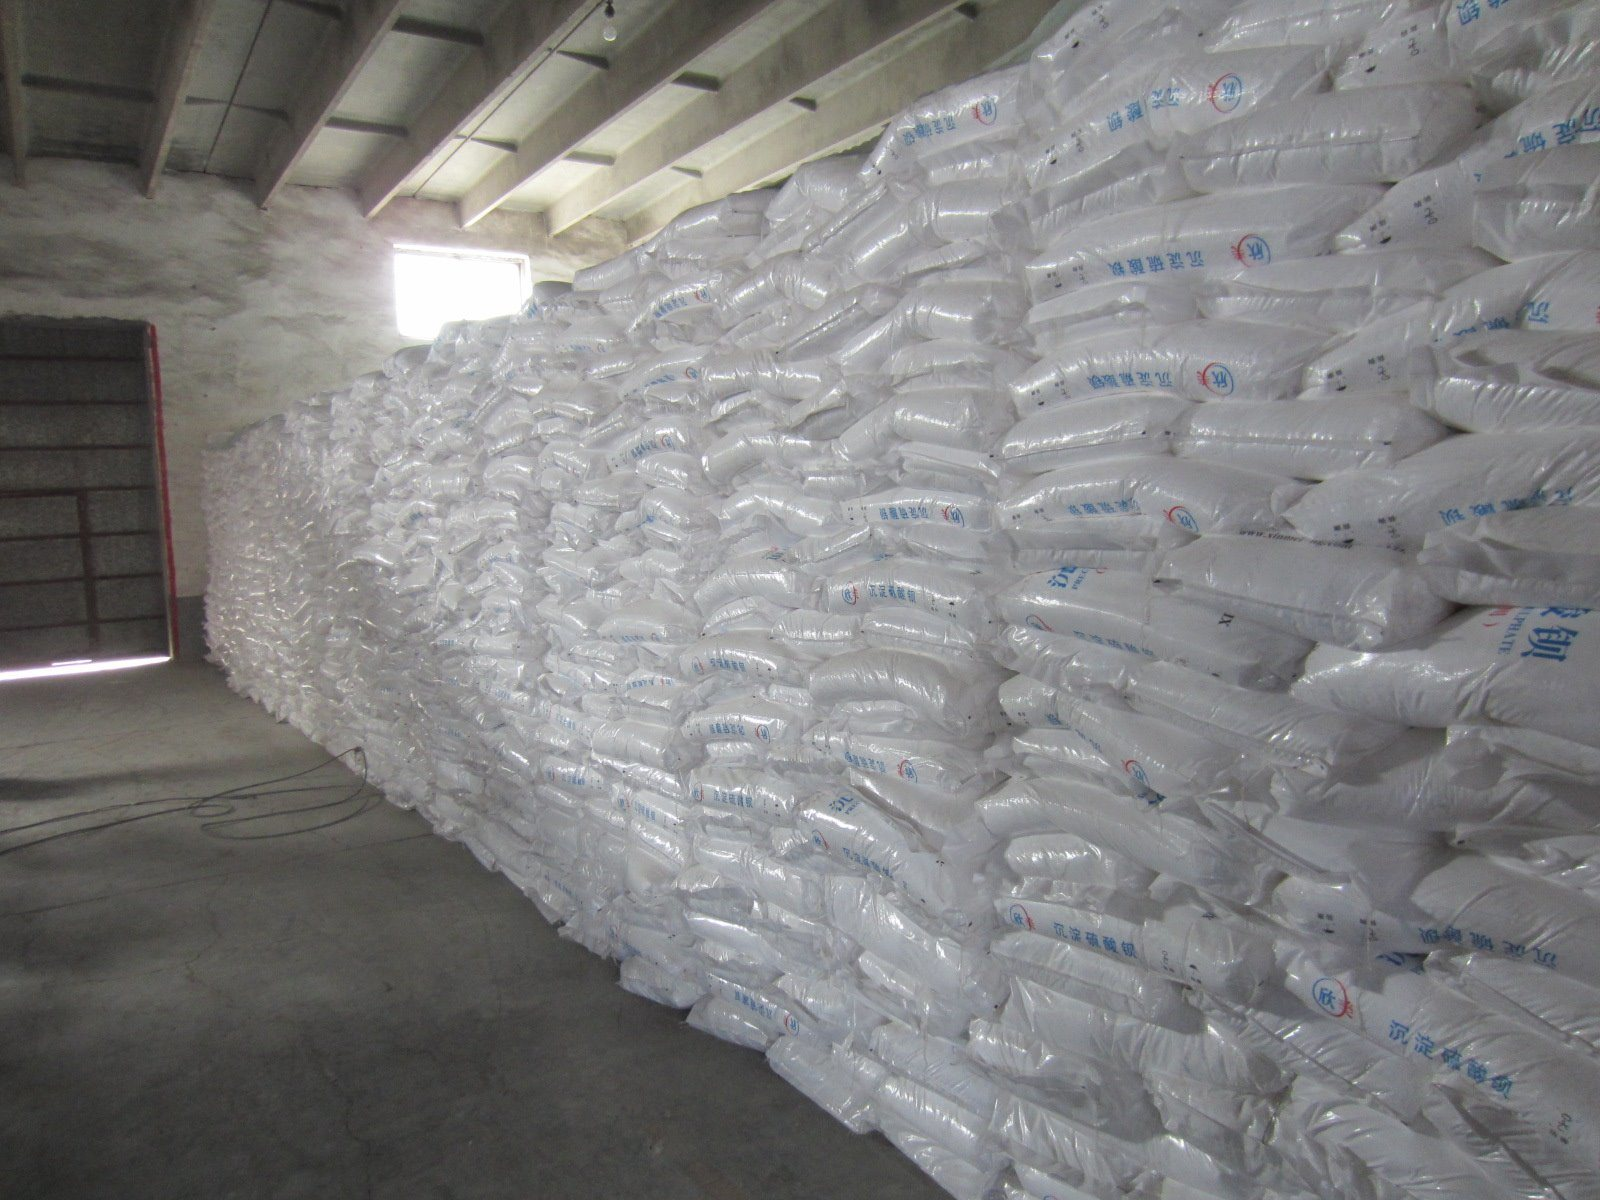 Factory Supplier Soda Ash99.2% Soda Ash Light 99.2% Sodium Carbonate 99.2%